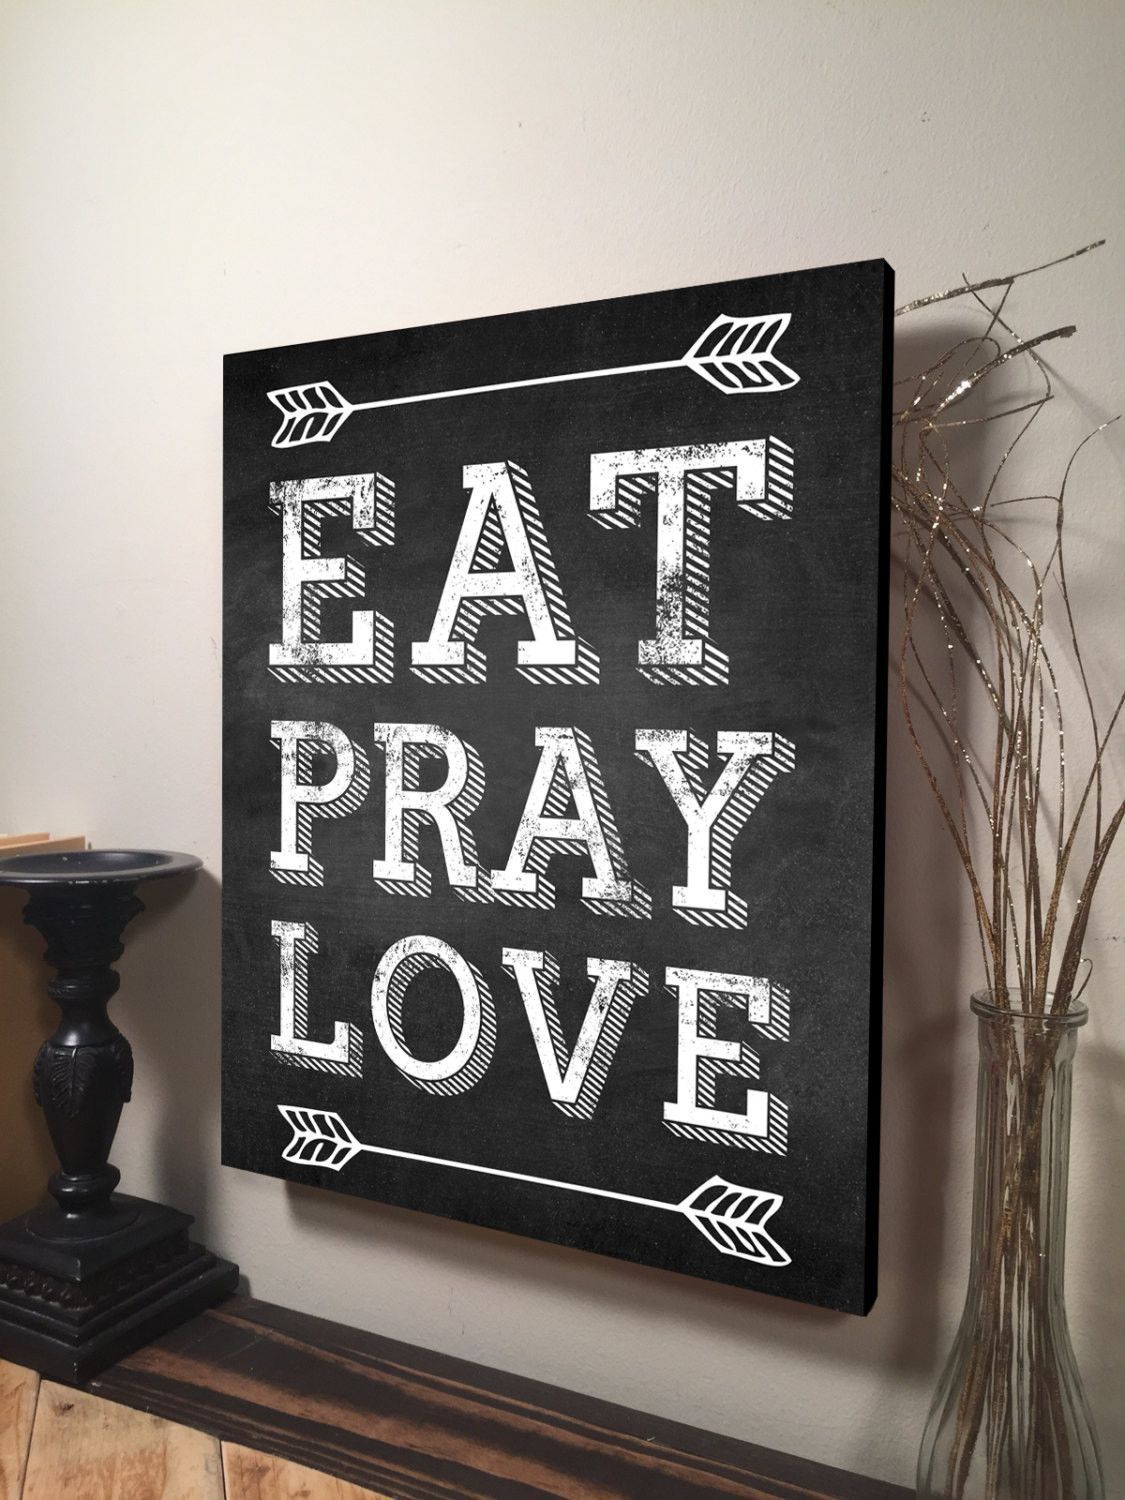 Welcome to Rustica Home Decor! We make unique family established signs, custom wood signs and high quality home decor products with a stunning appeal. This item is a digitally printed sign with a beau